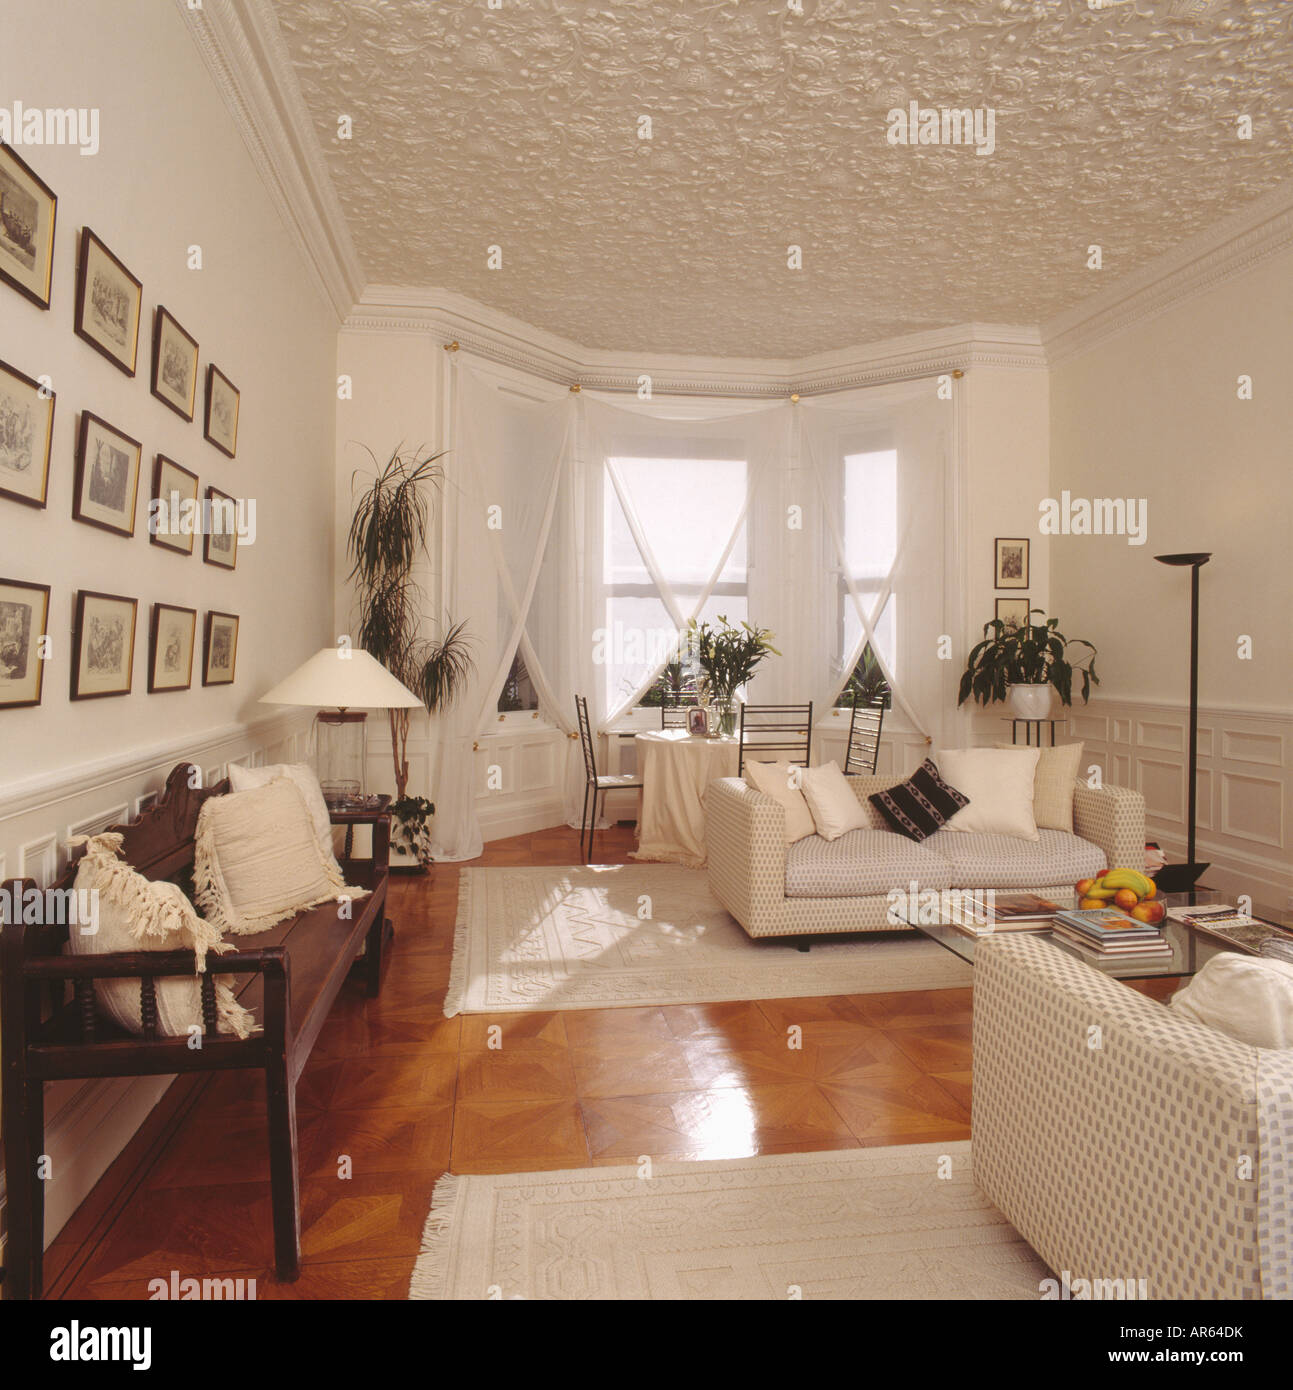 Stock photo textured ceiling in white living room with wooden settle and white sofas cream rugs on polished wooden flooring